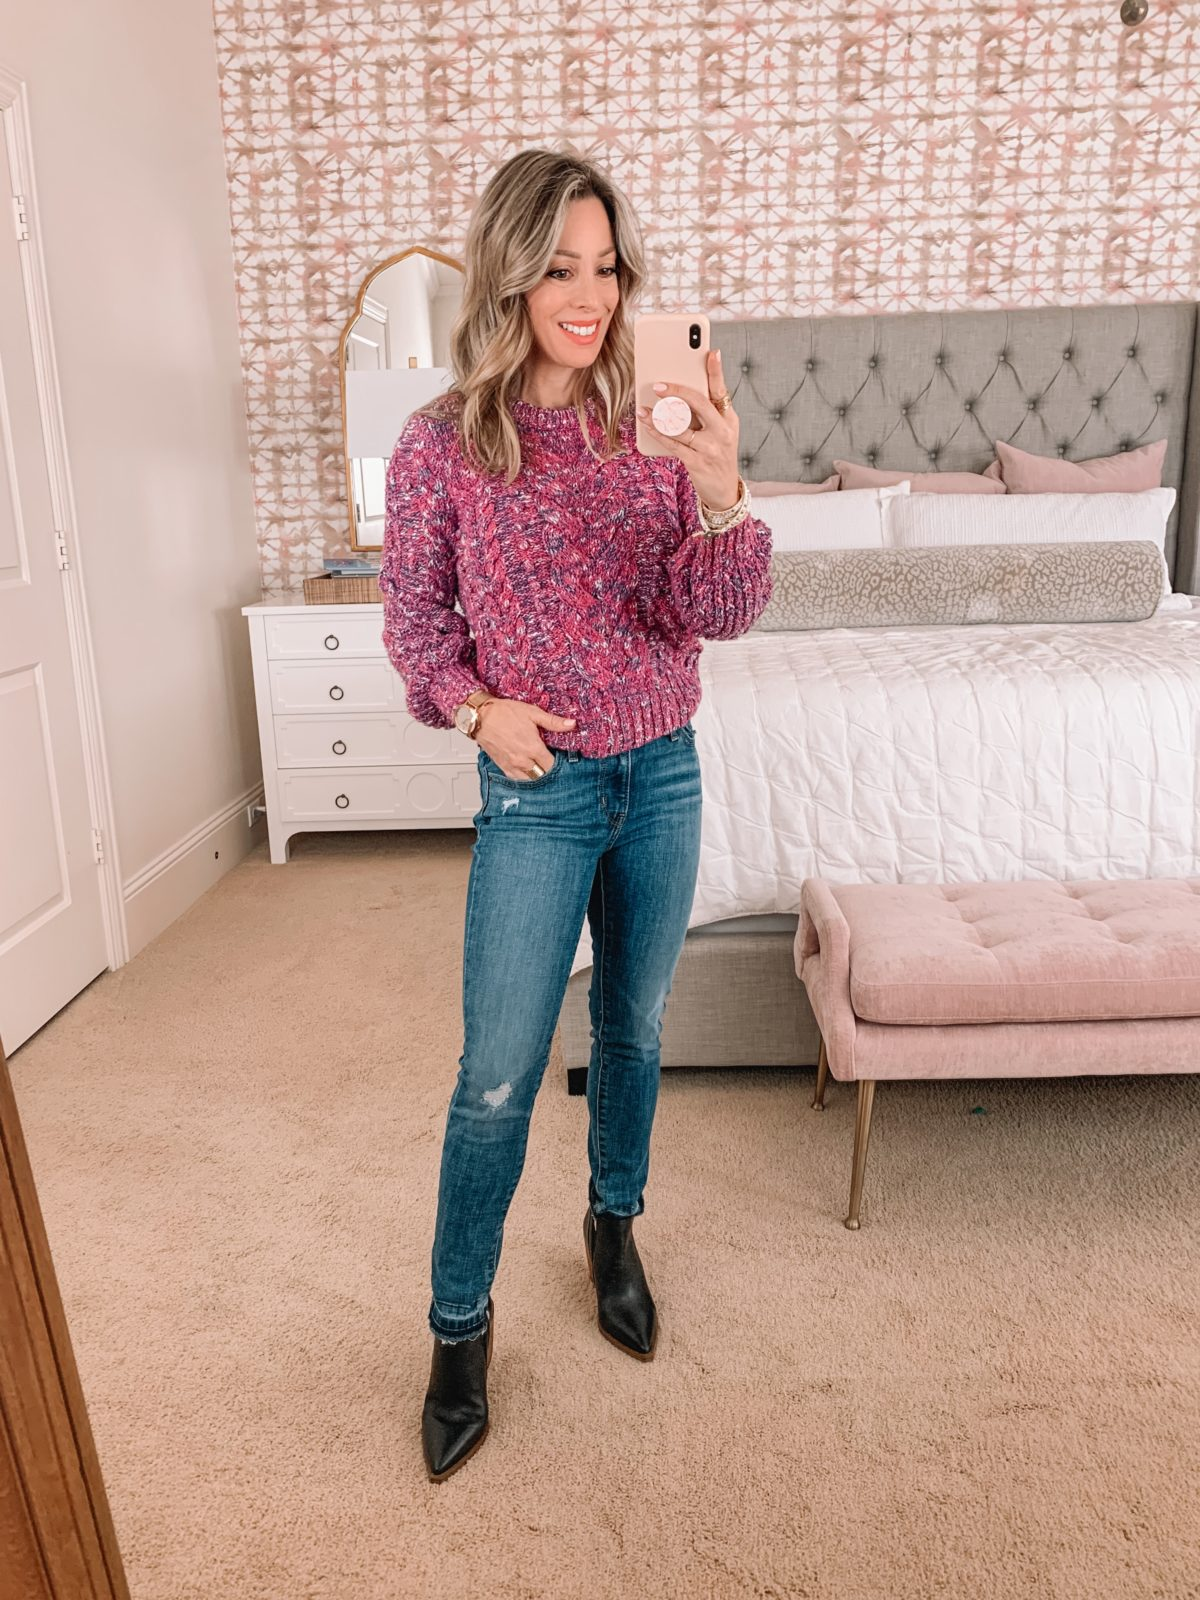 Amazon Fashion Faves, Pink Sweater, Jeans, Booties